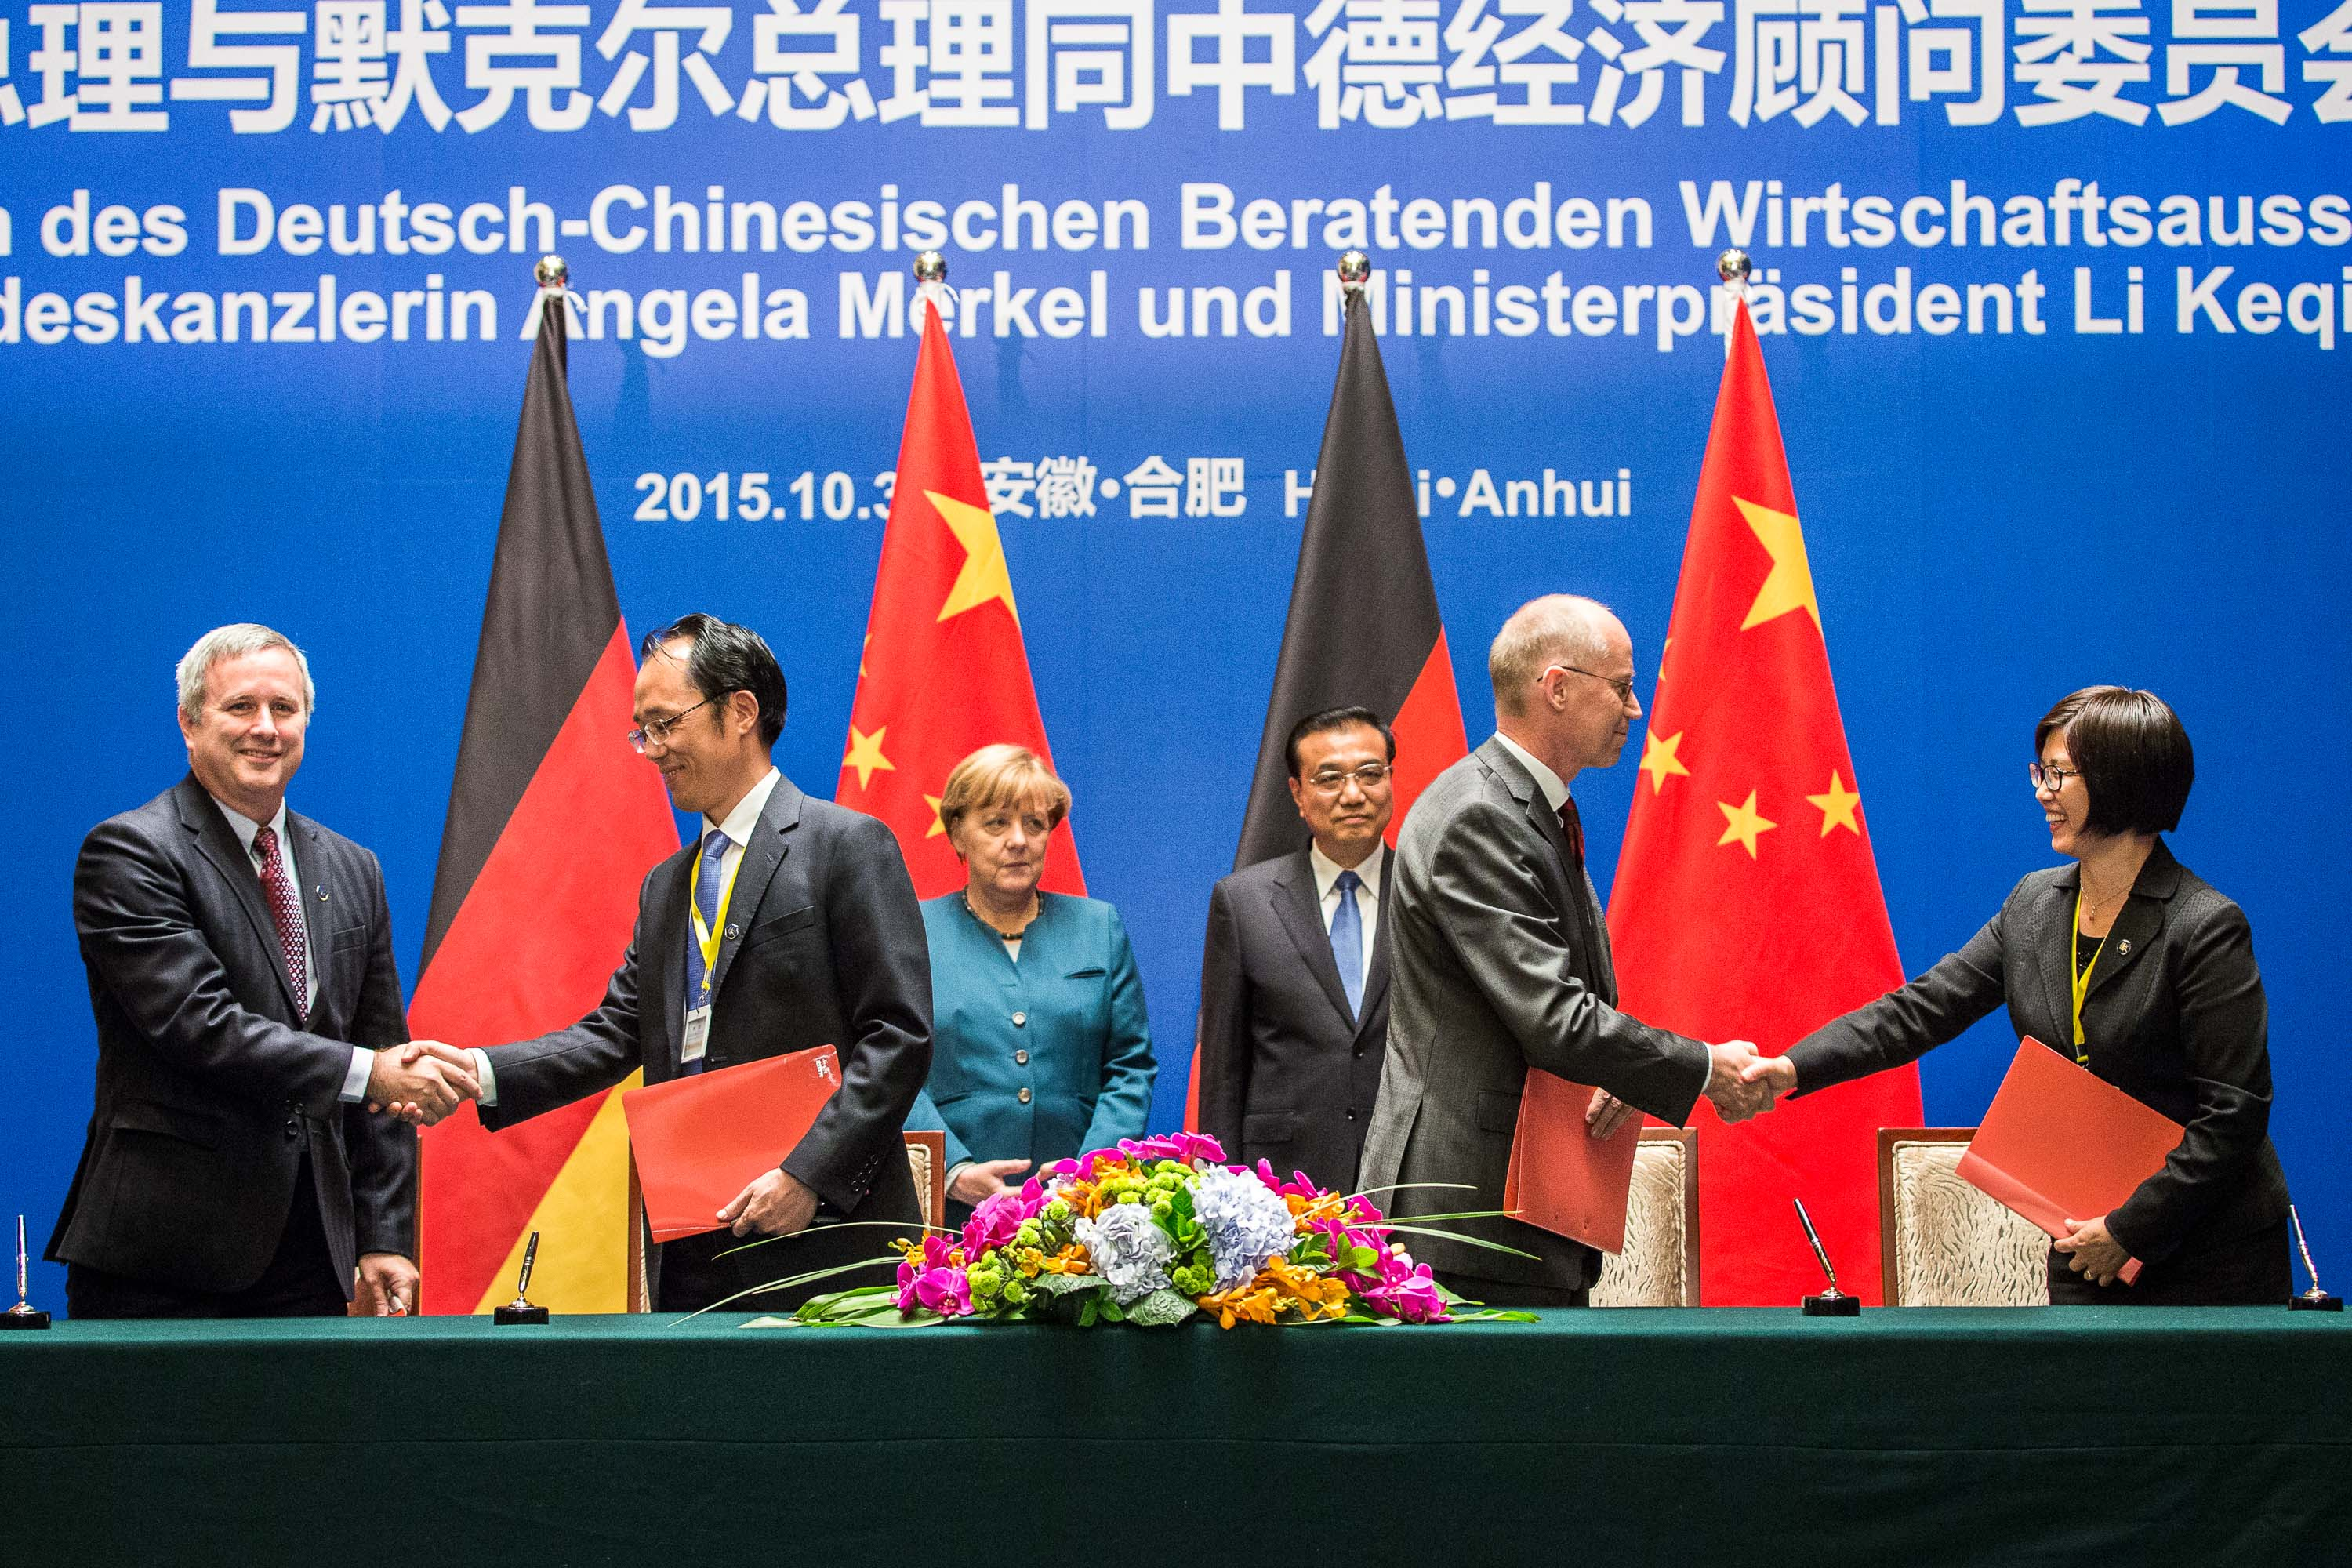 The signing ceremony of the cooperation agreement between UFZ and CLMA took place during the visit of the German Chancellor Angela Merkel in China.